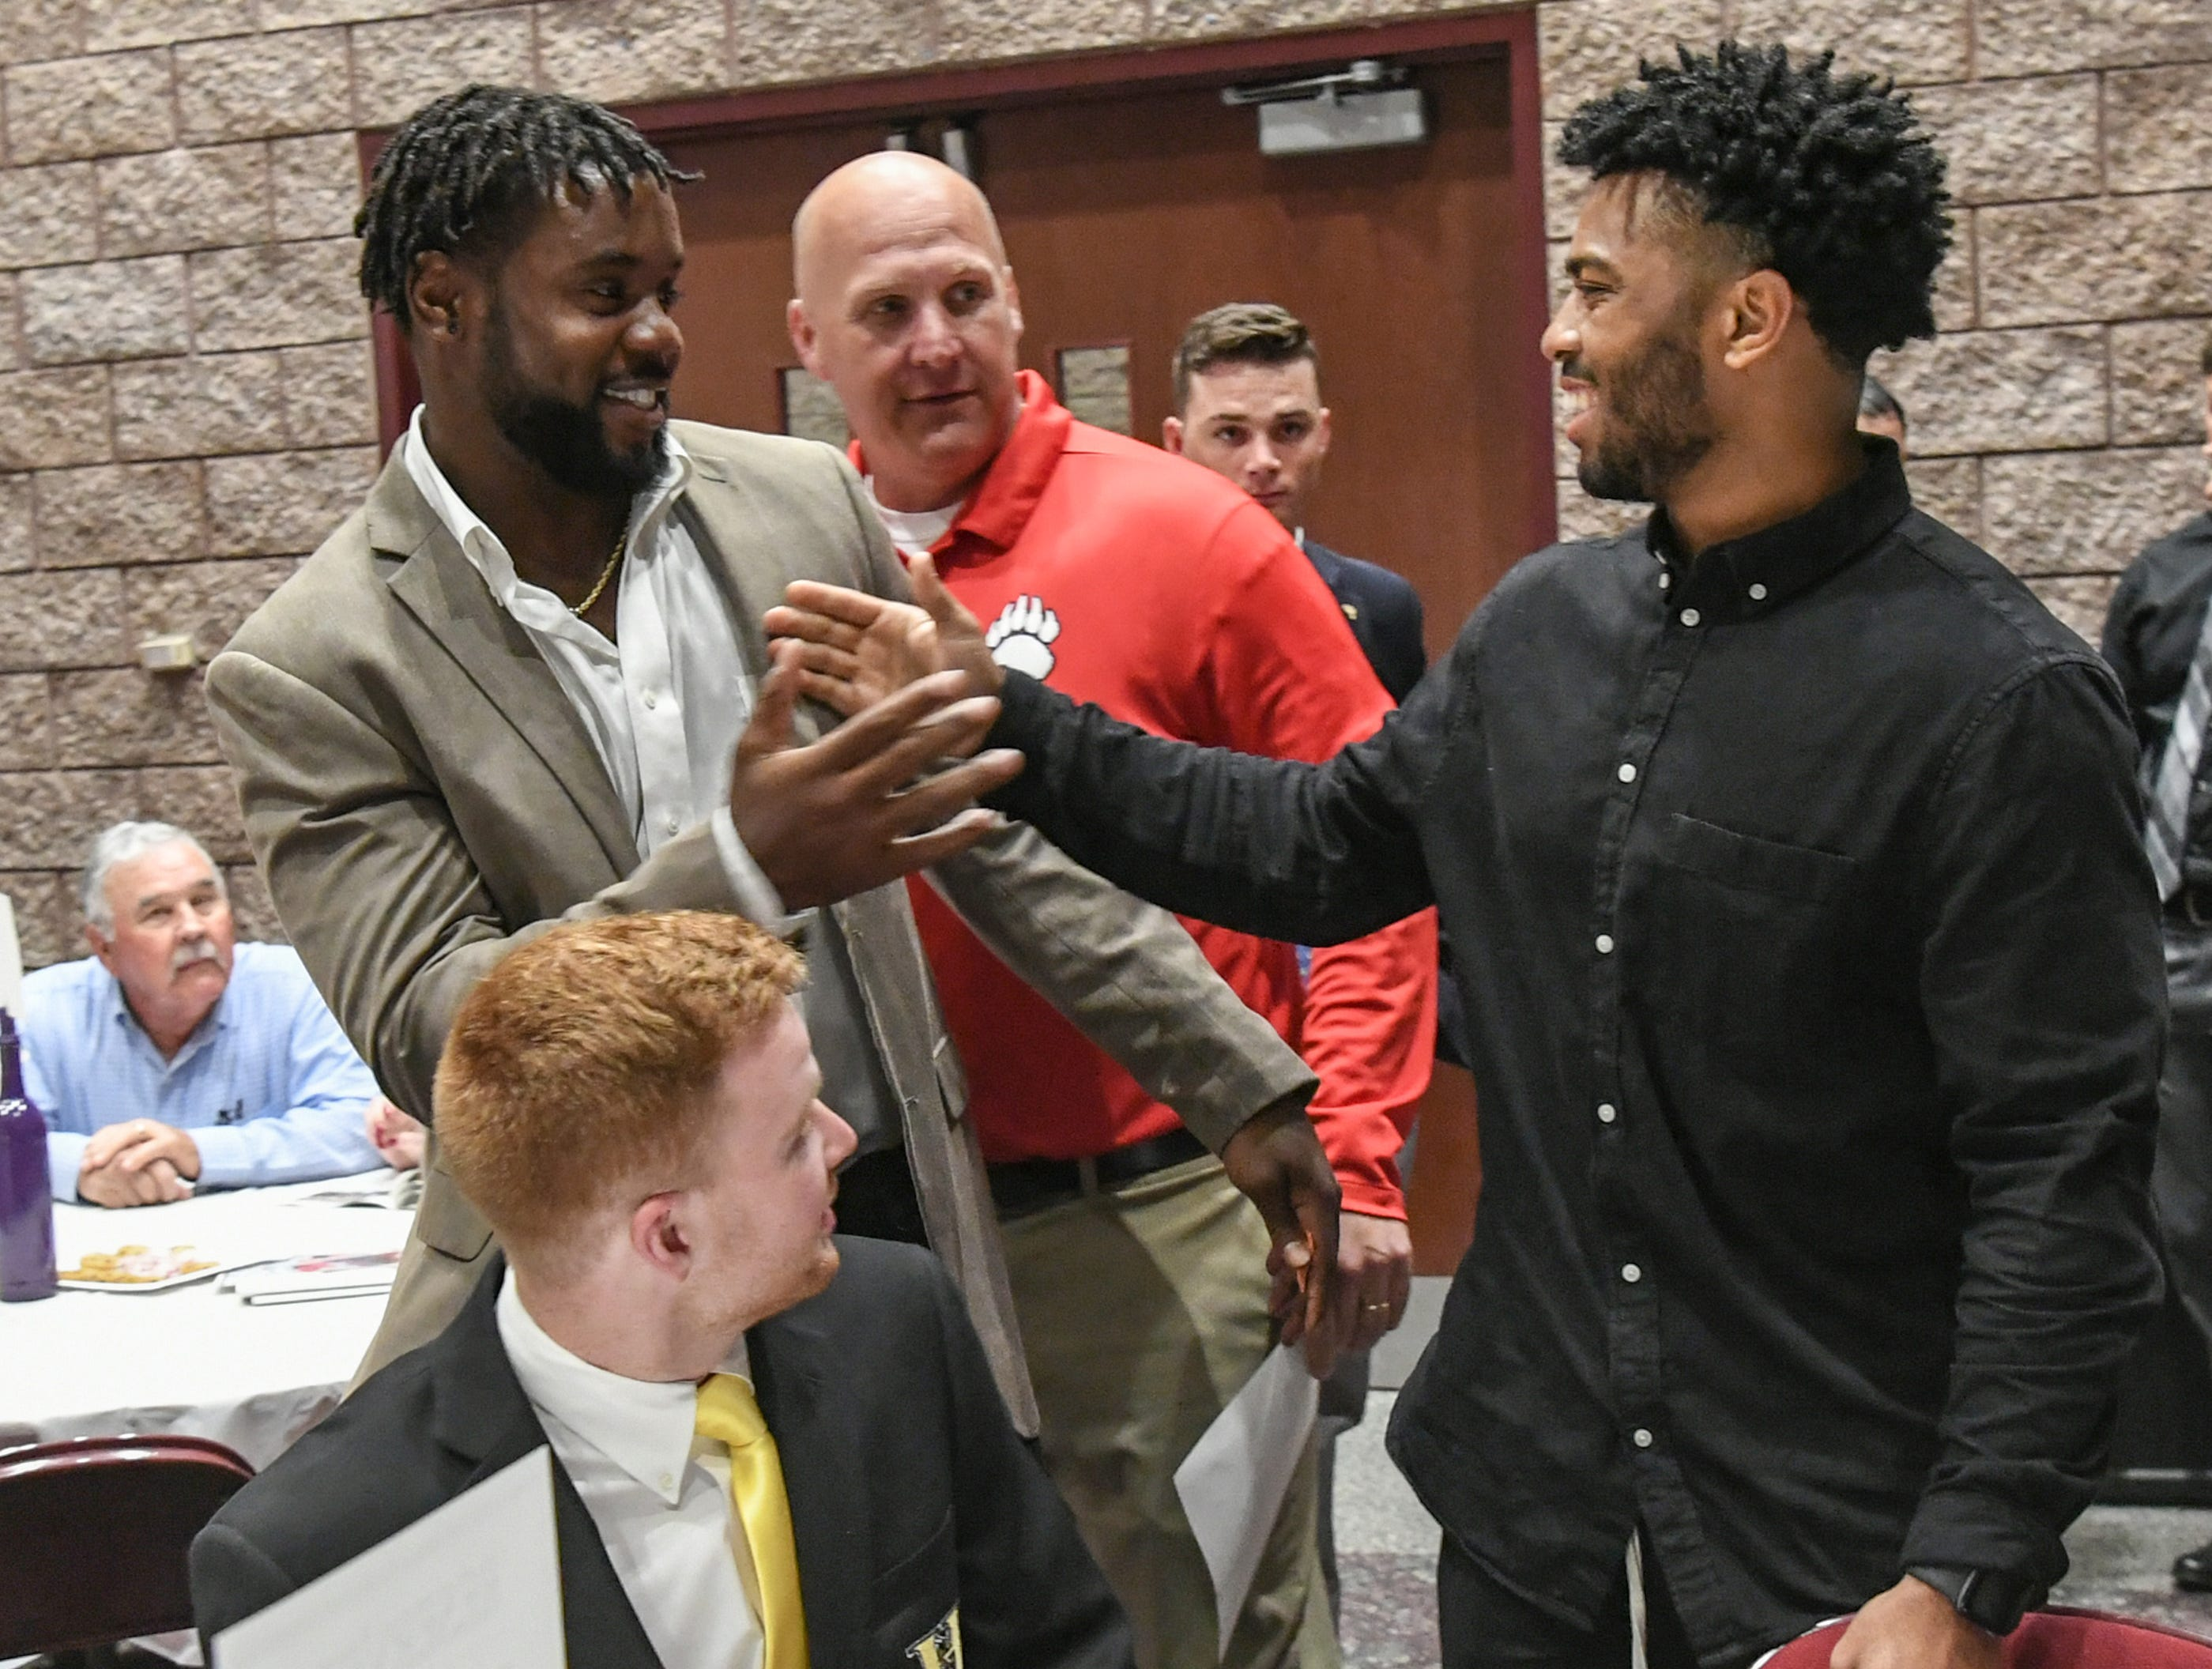 Kendall Joseph, left, former BHP and Clemson star, greets Darien Rencher, right, former T.L. Hanna and current Clemson running back, as Russell Blackston, middle, watches with Alex Meredith, below, during the Anderson Area Touchdown Club Annual Awards Banquet at the Anderson County Civic Center Monday, April 8th, 2019. Awards were given to the Players of the Year and the Coach of the Year from the eight Anderson County high schools. The club honored former Belton-Honea Path player Kendall Joseph who was part of two National Championship Clemson football teams.